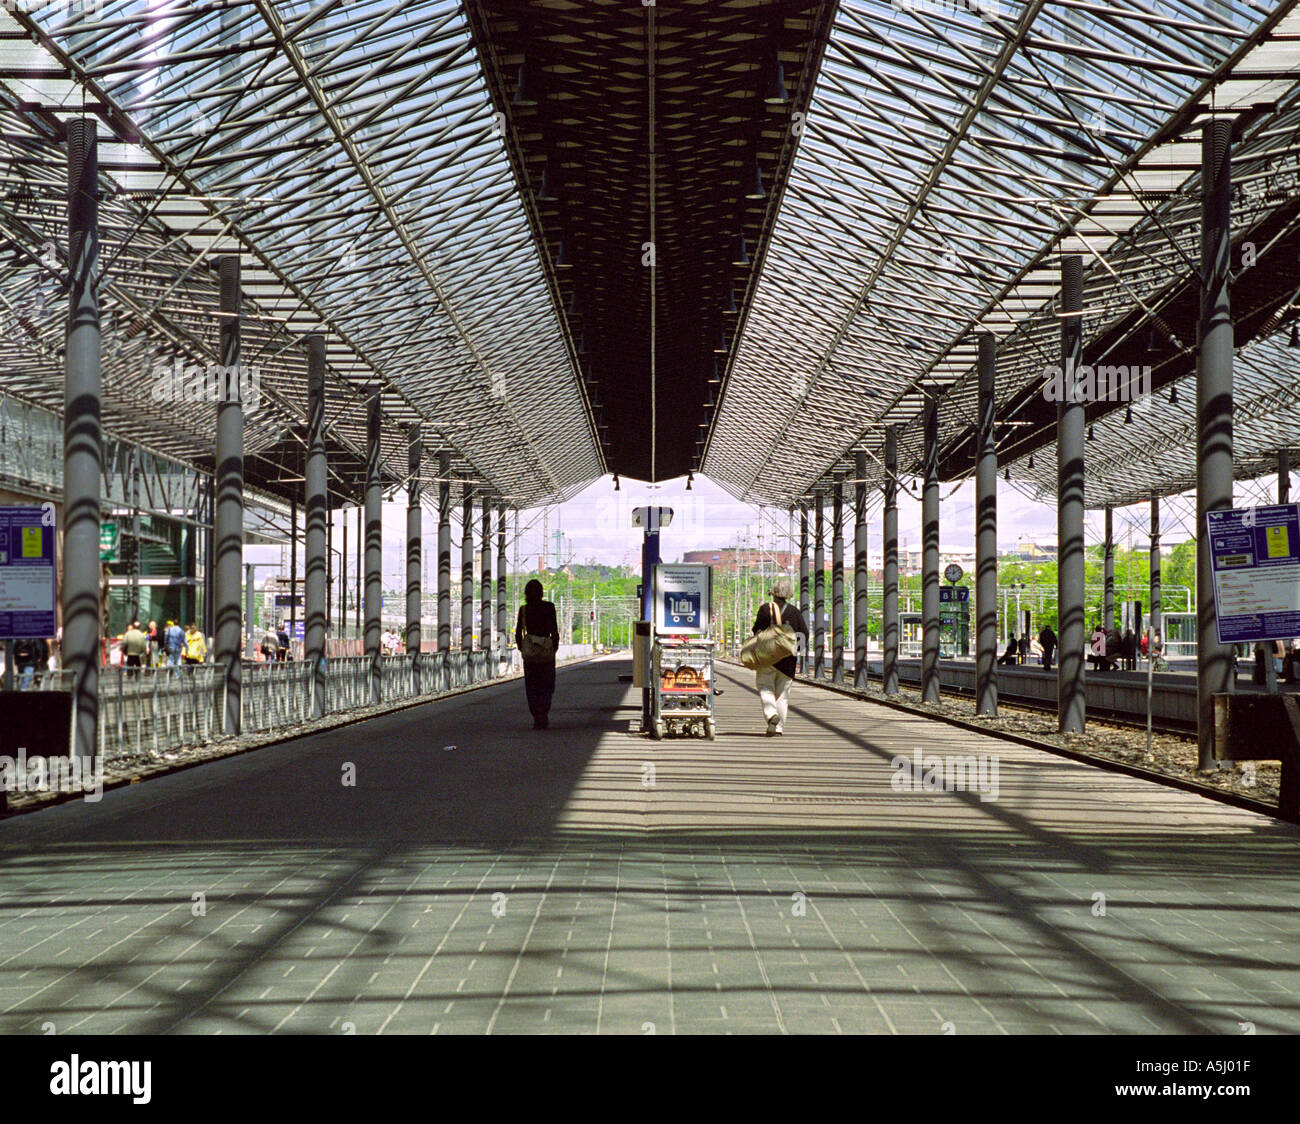 Two people walking down the platform at Helsinki railway station Finland - Stock Image